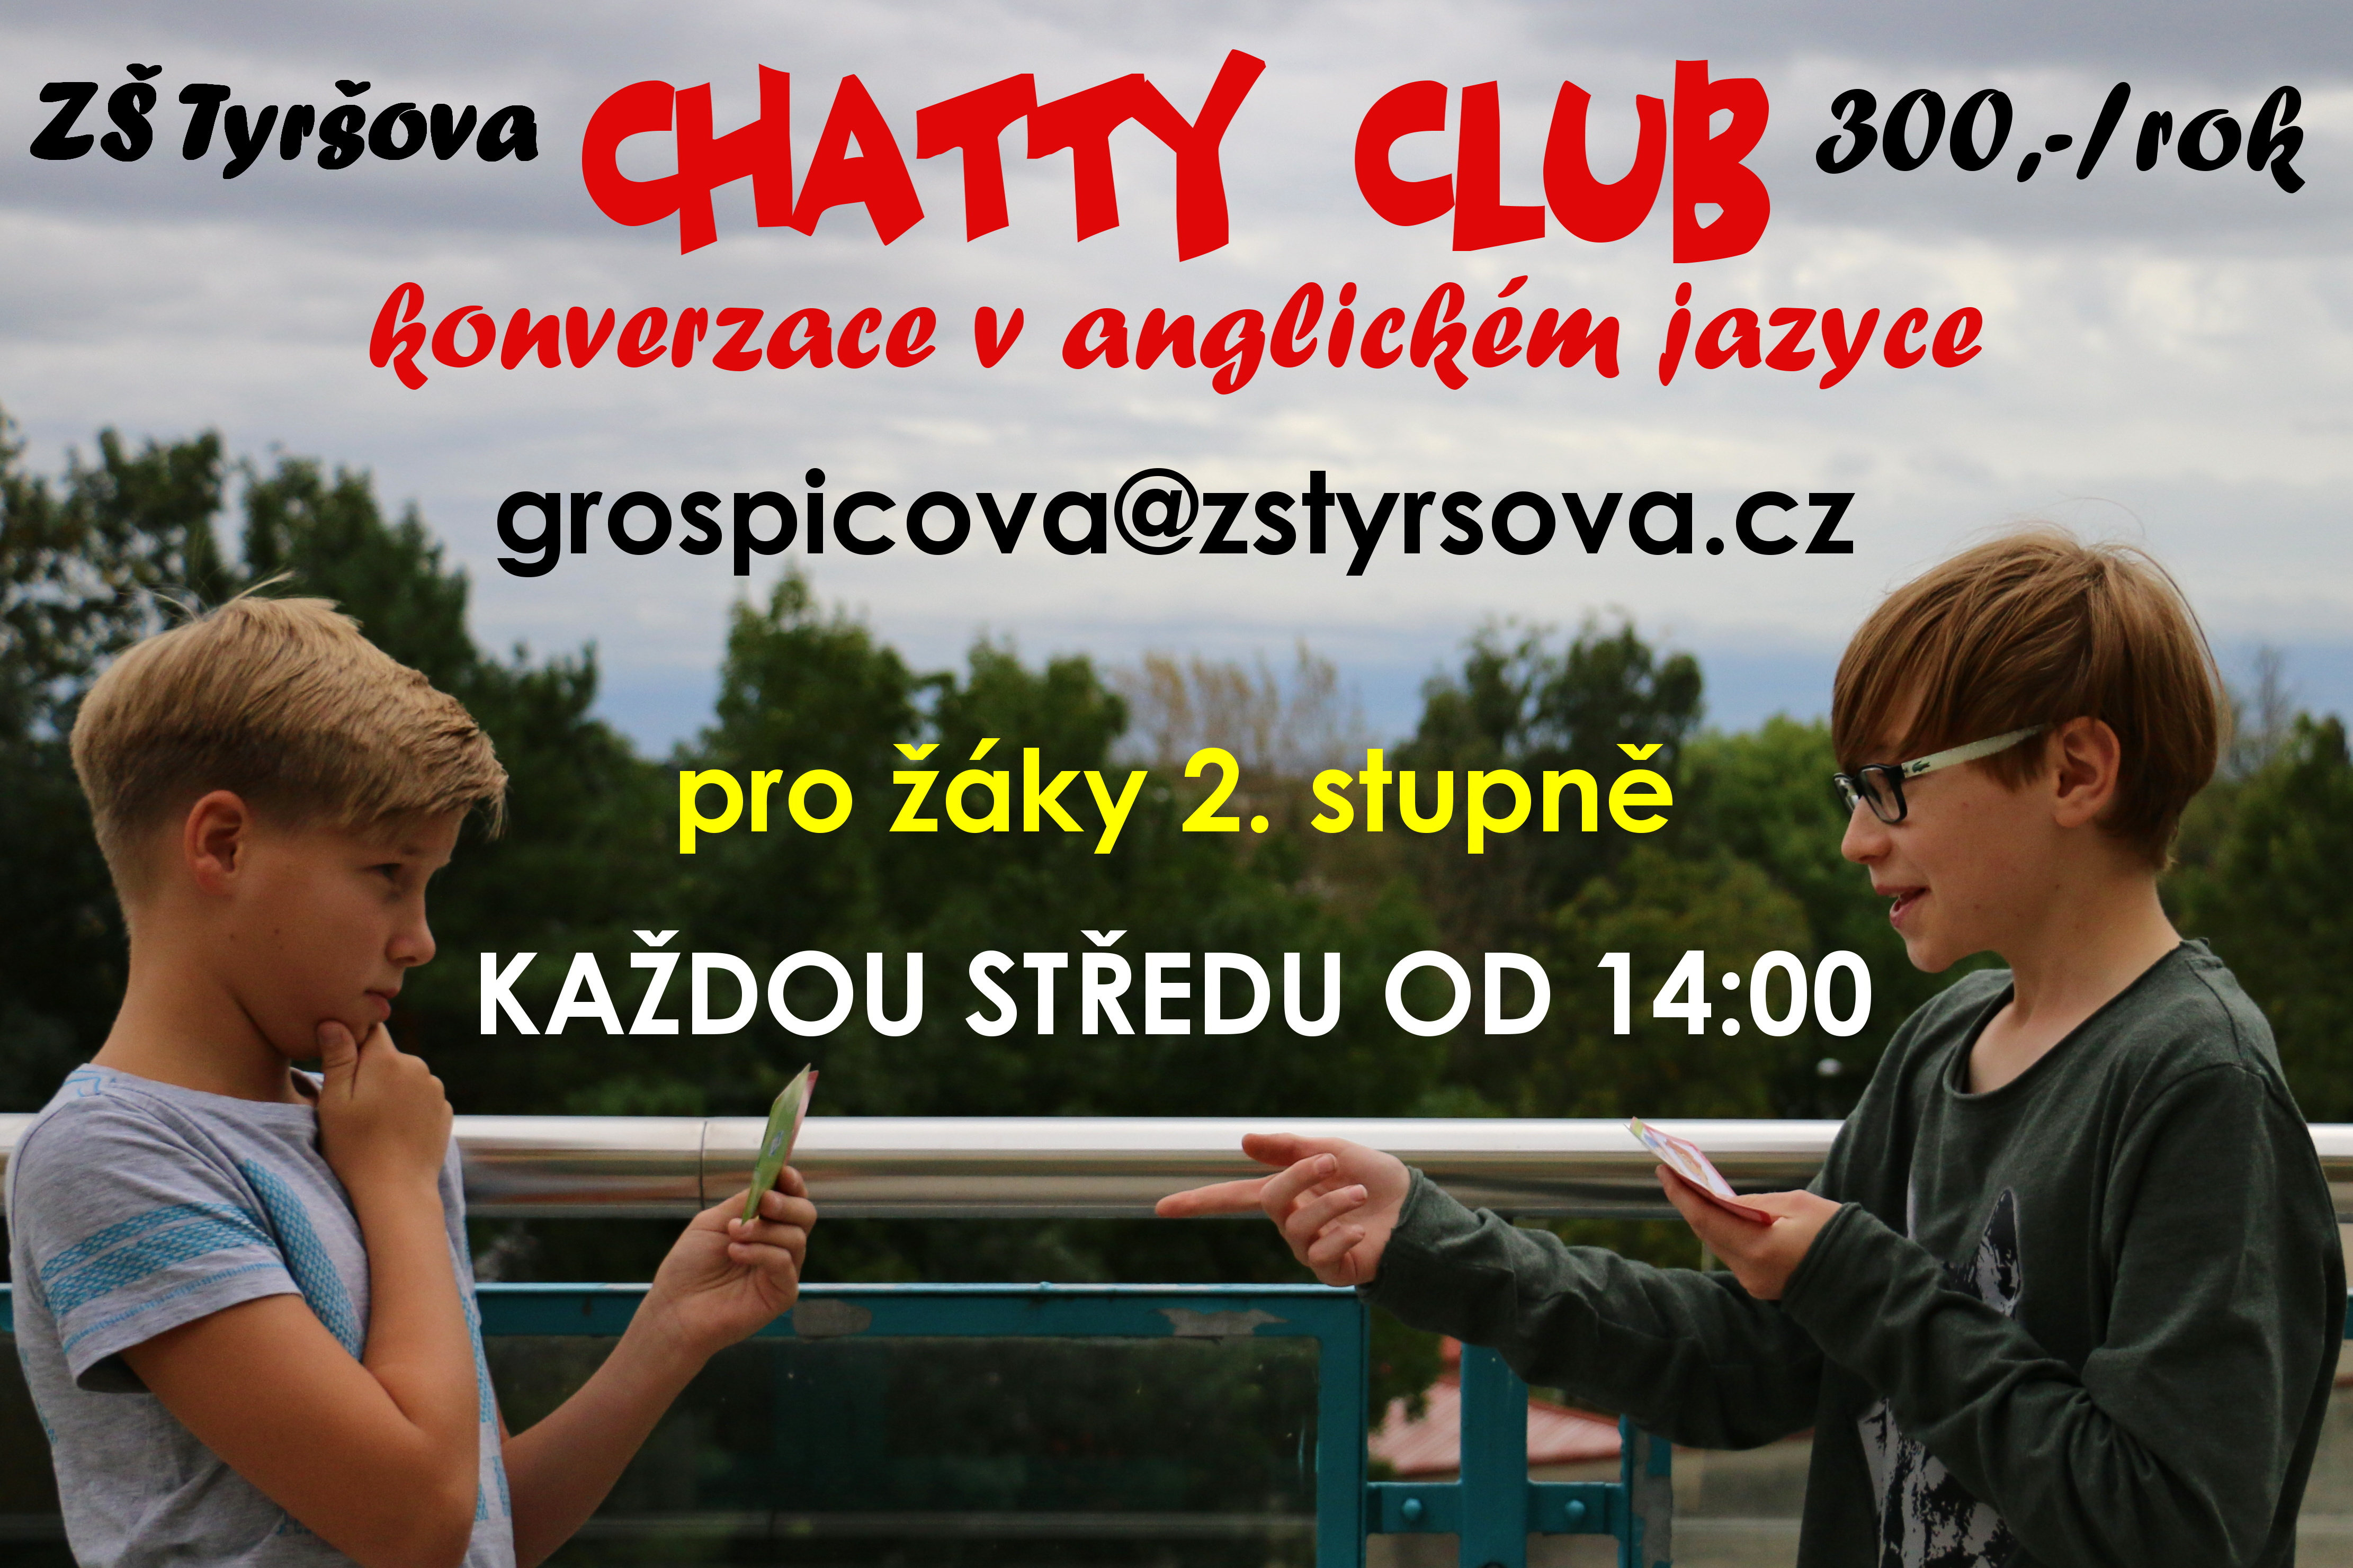 CHATTY CLUB 2018/2019